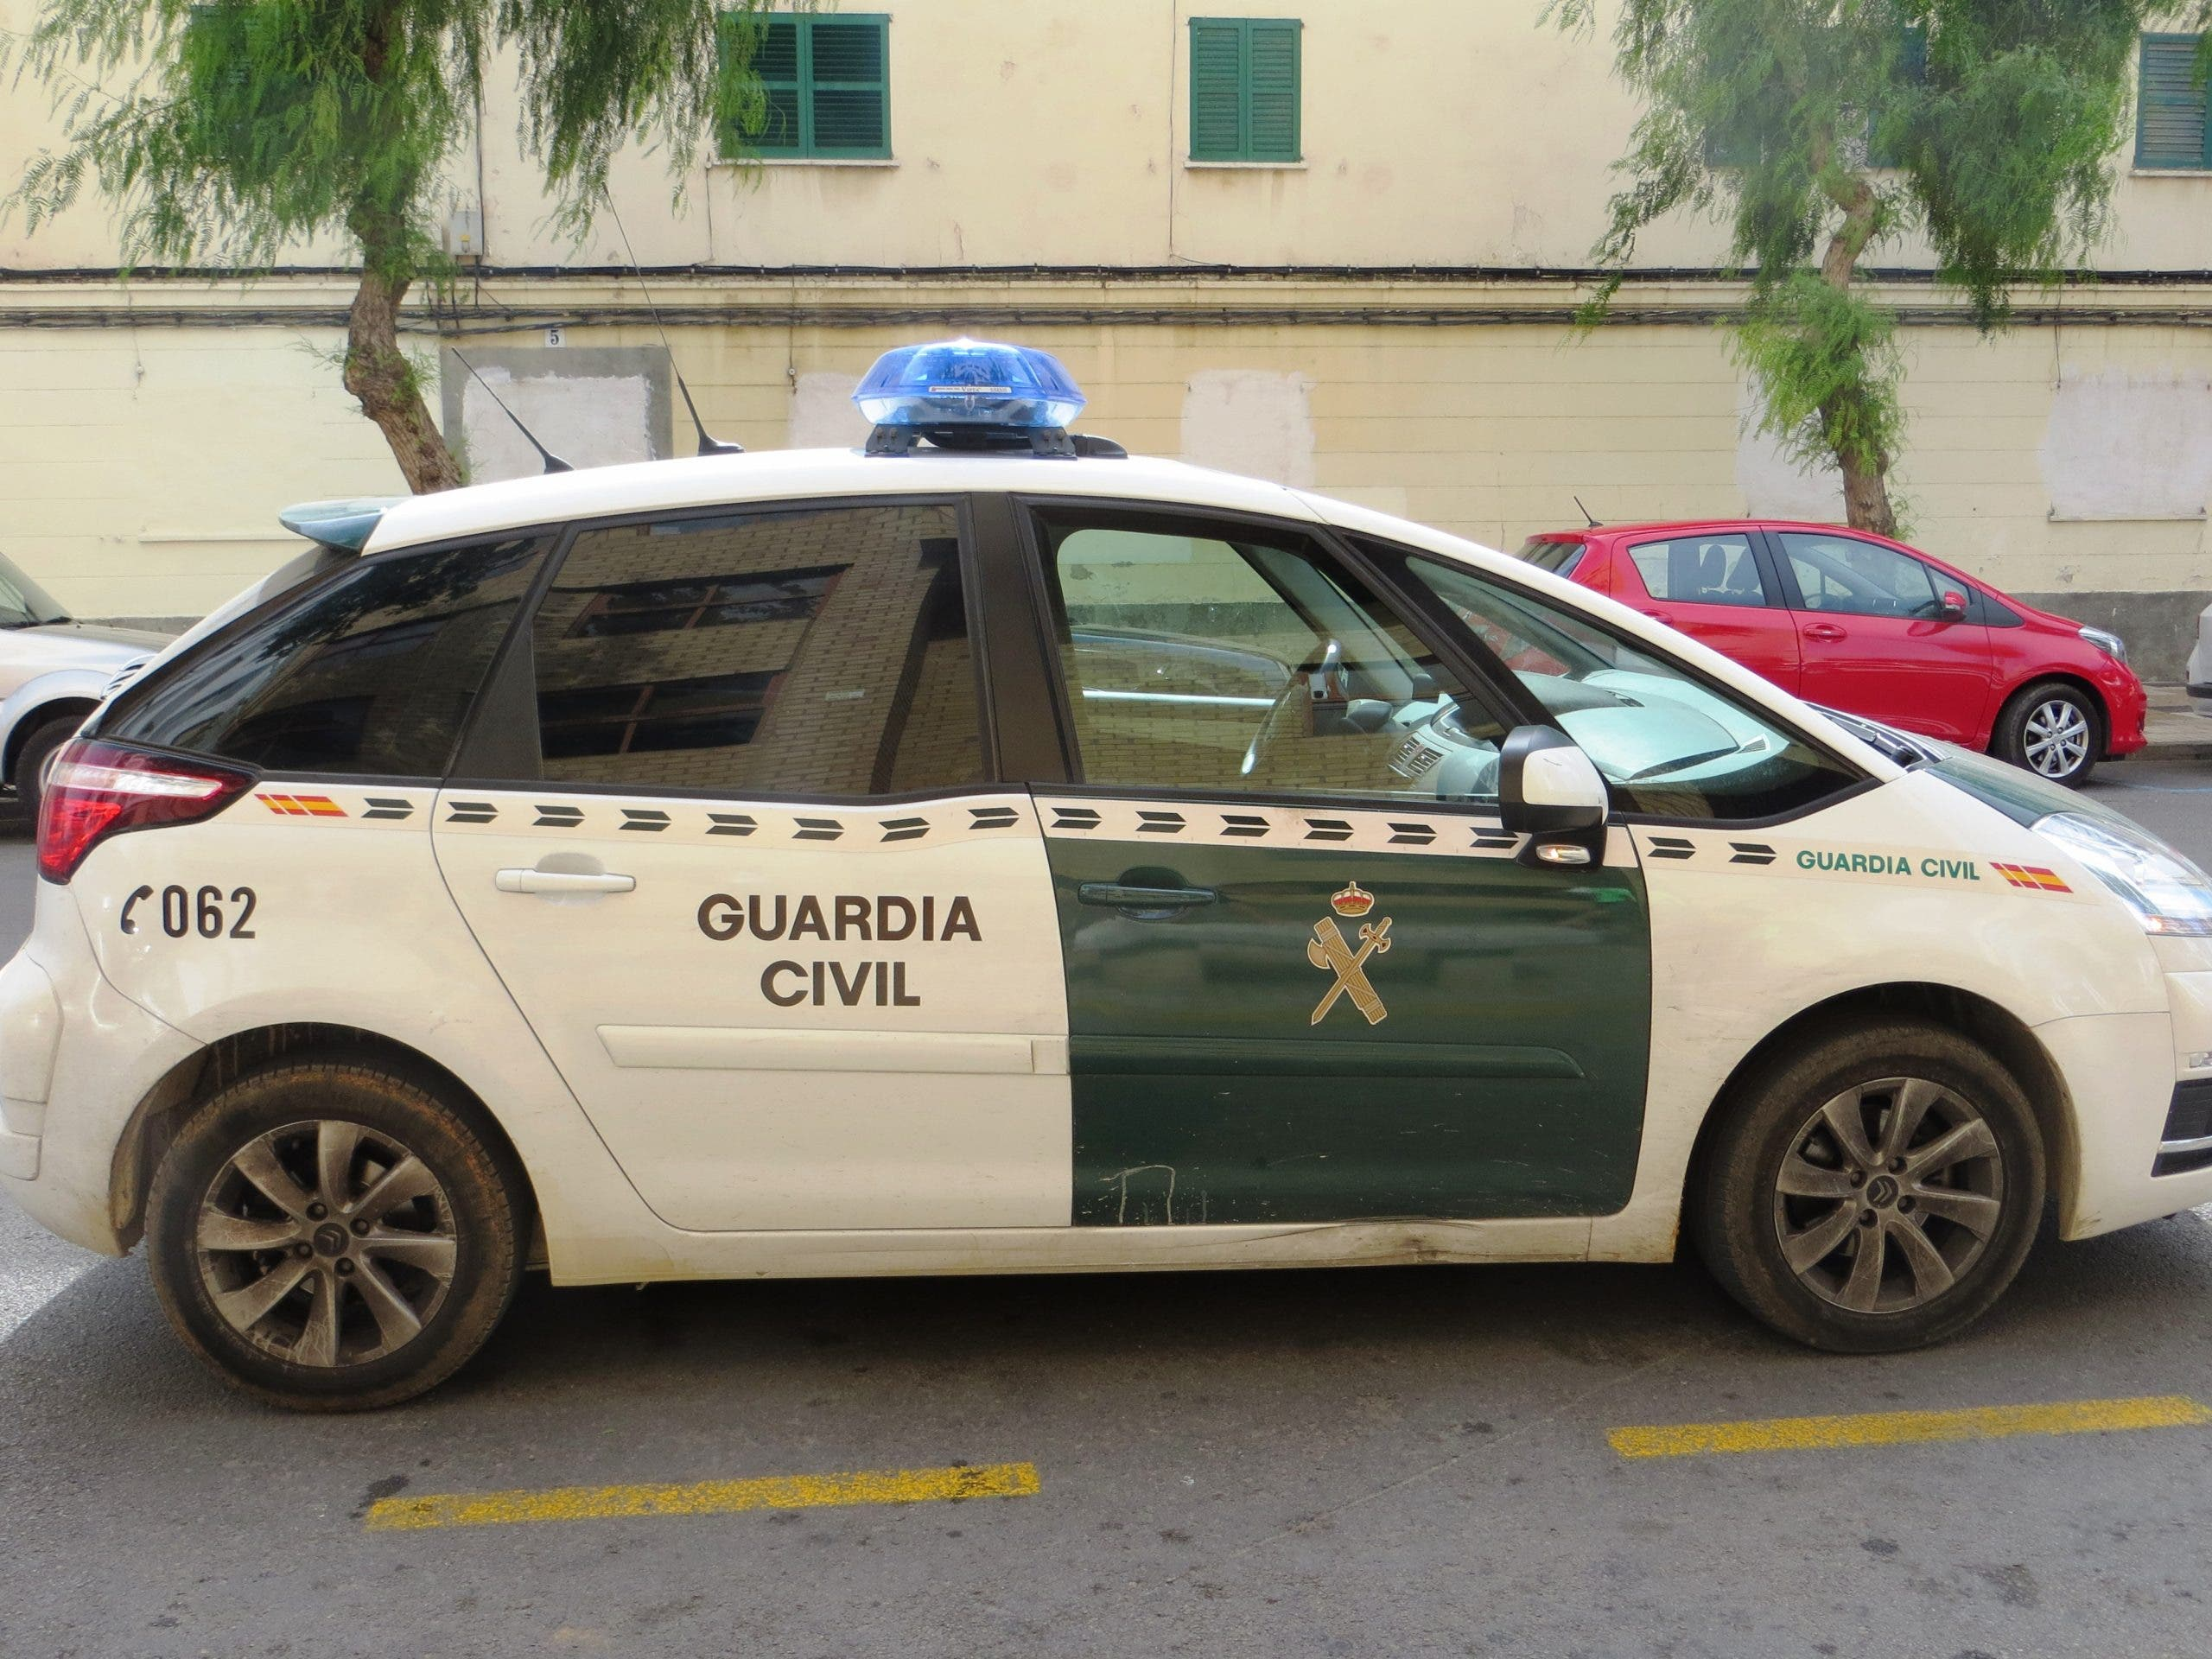 Guardia Civil car